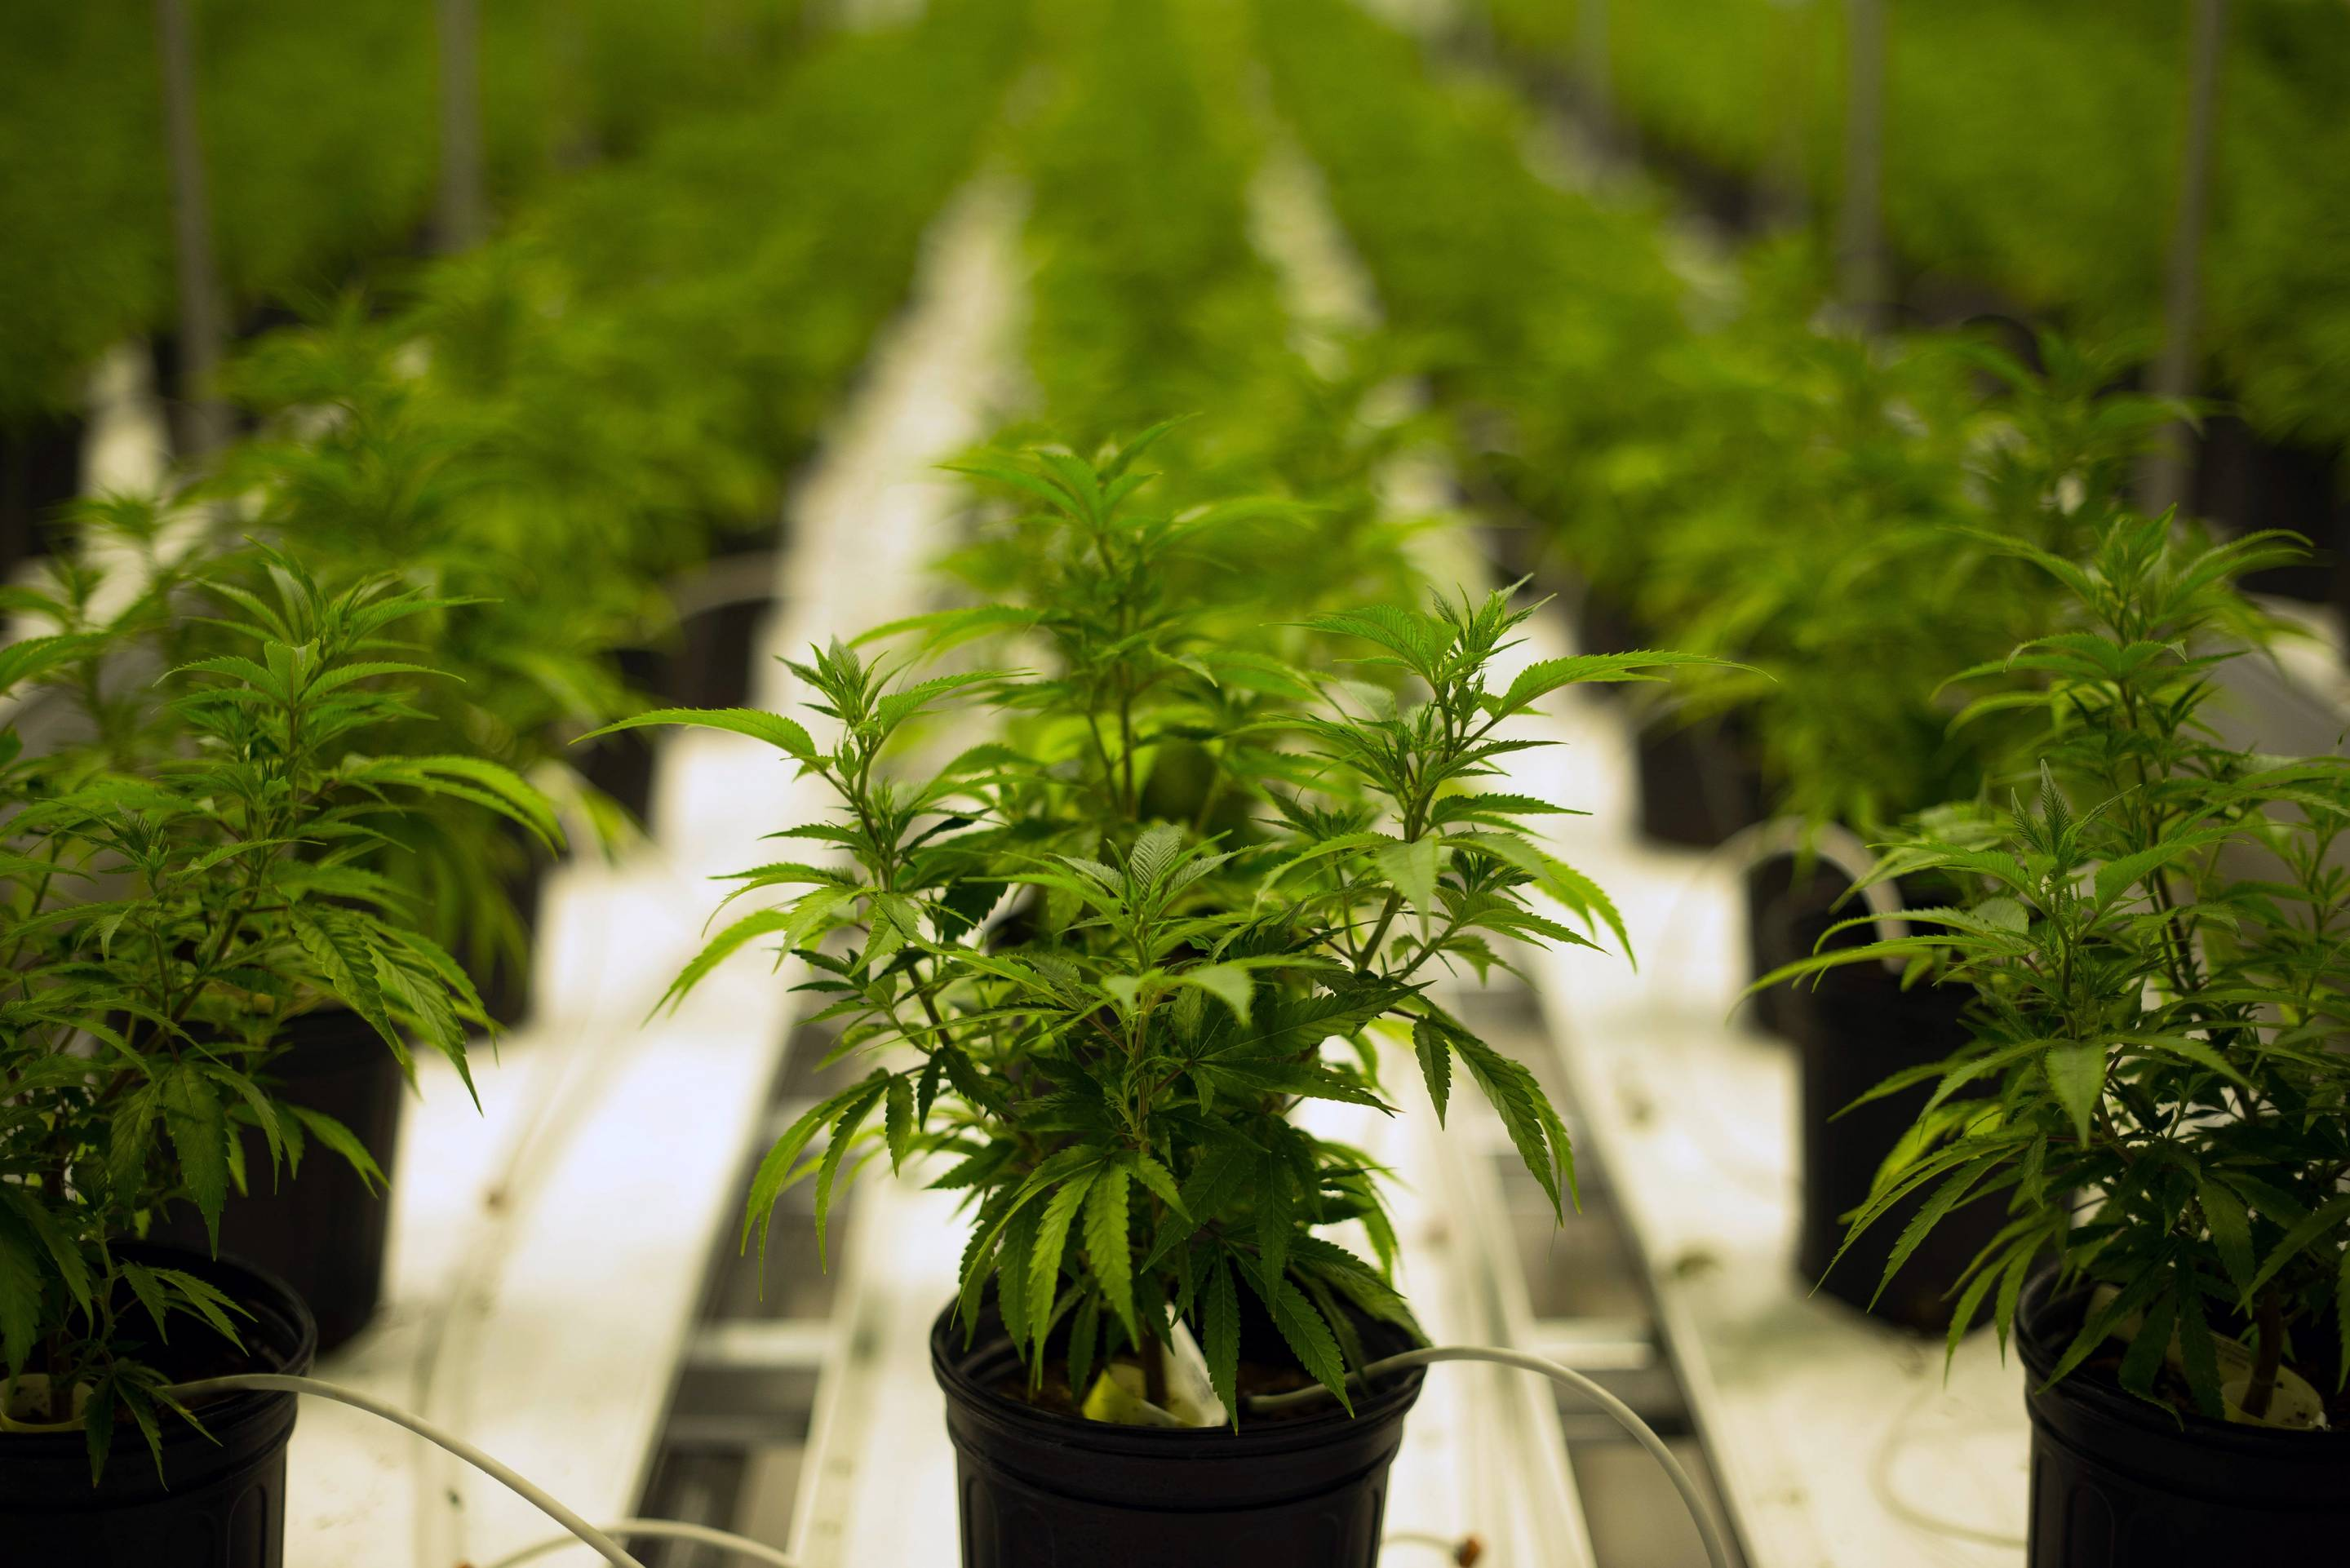 marijuana plants grow in a climate controlled growing room